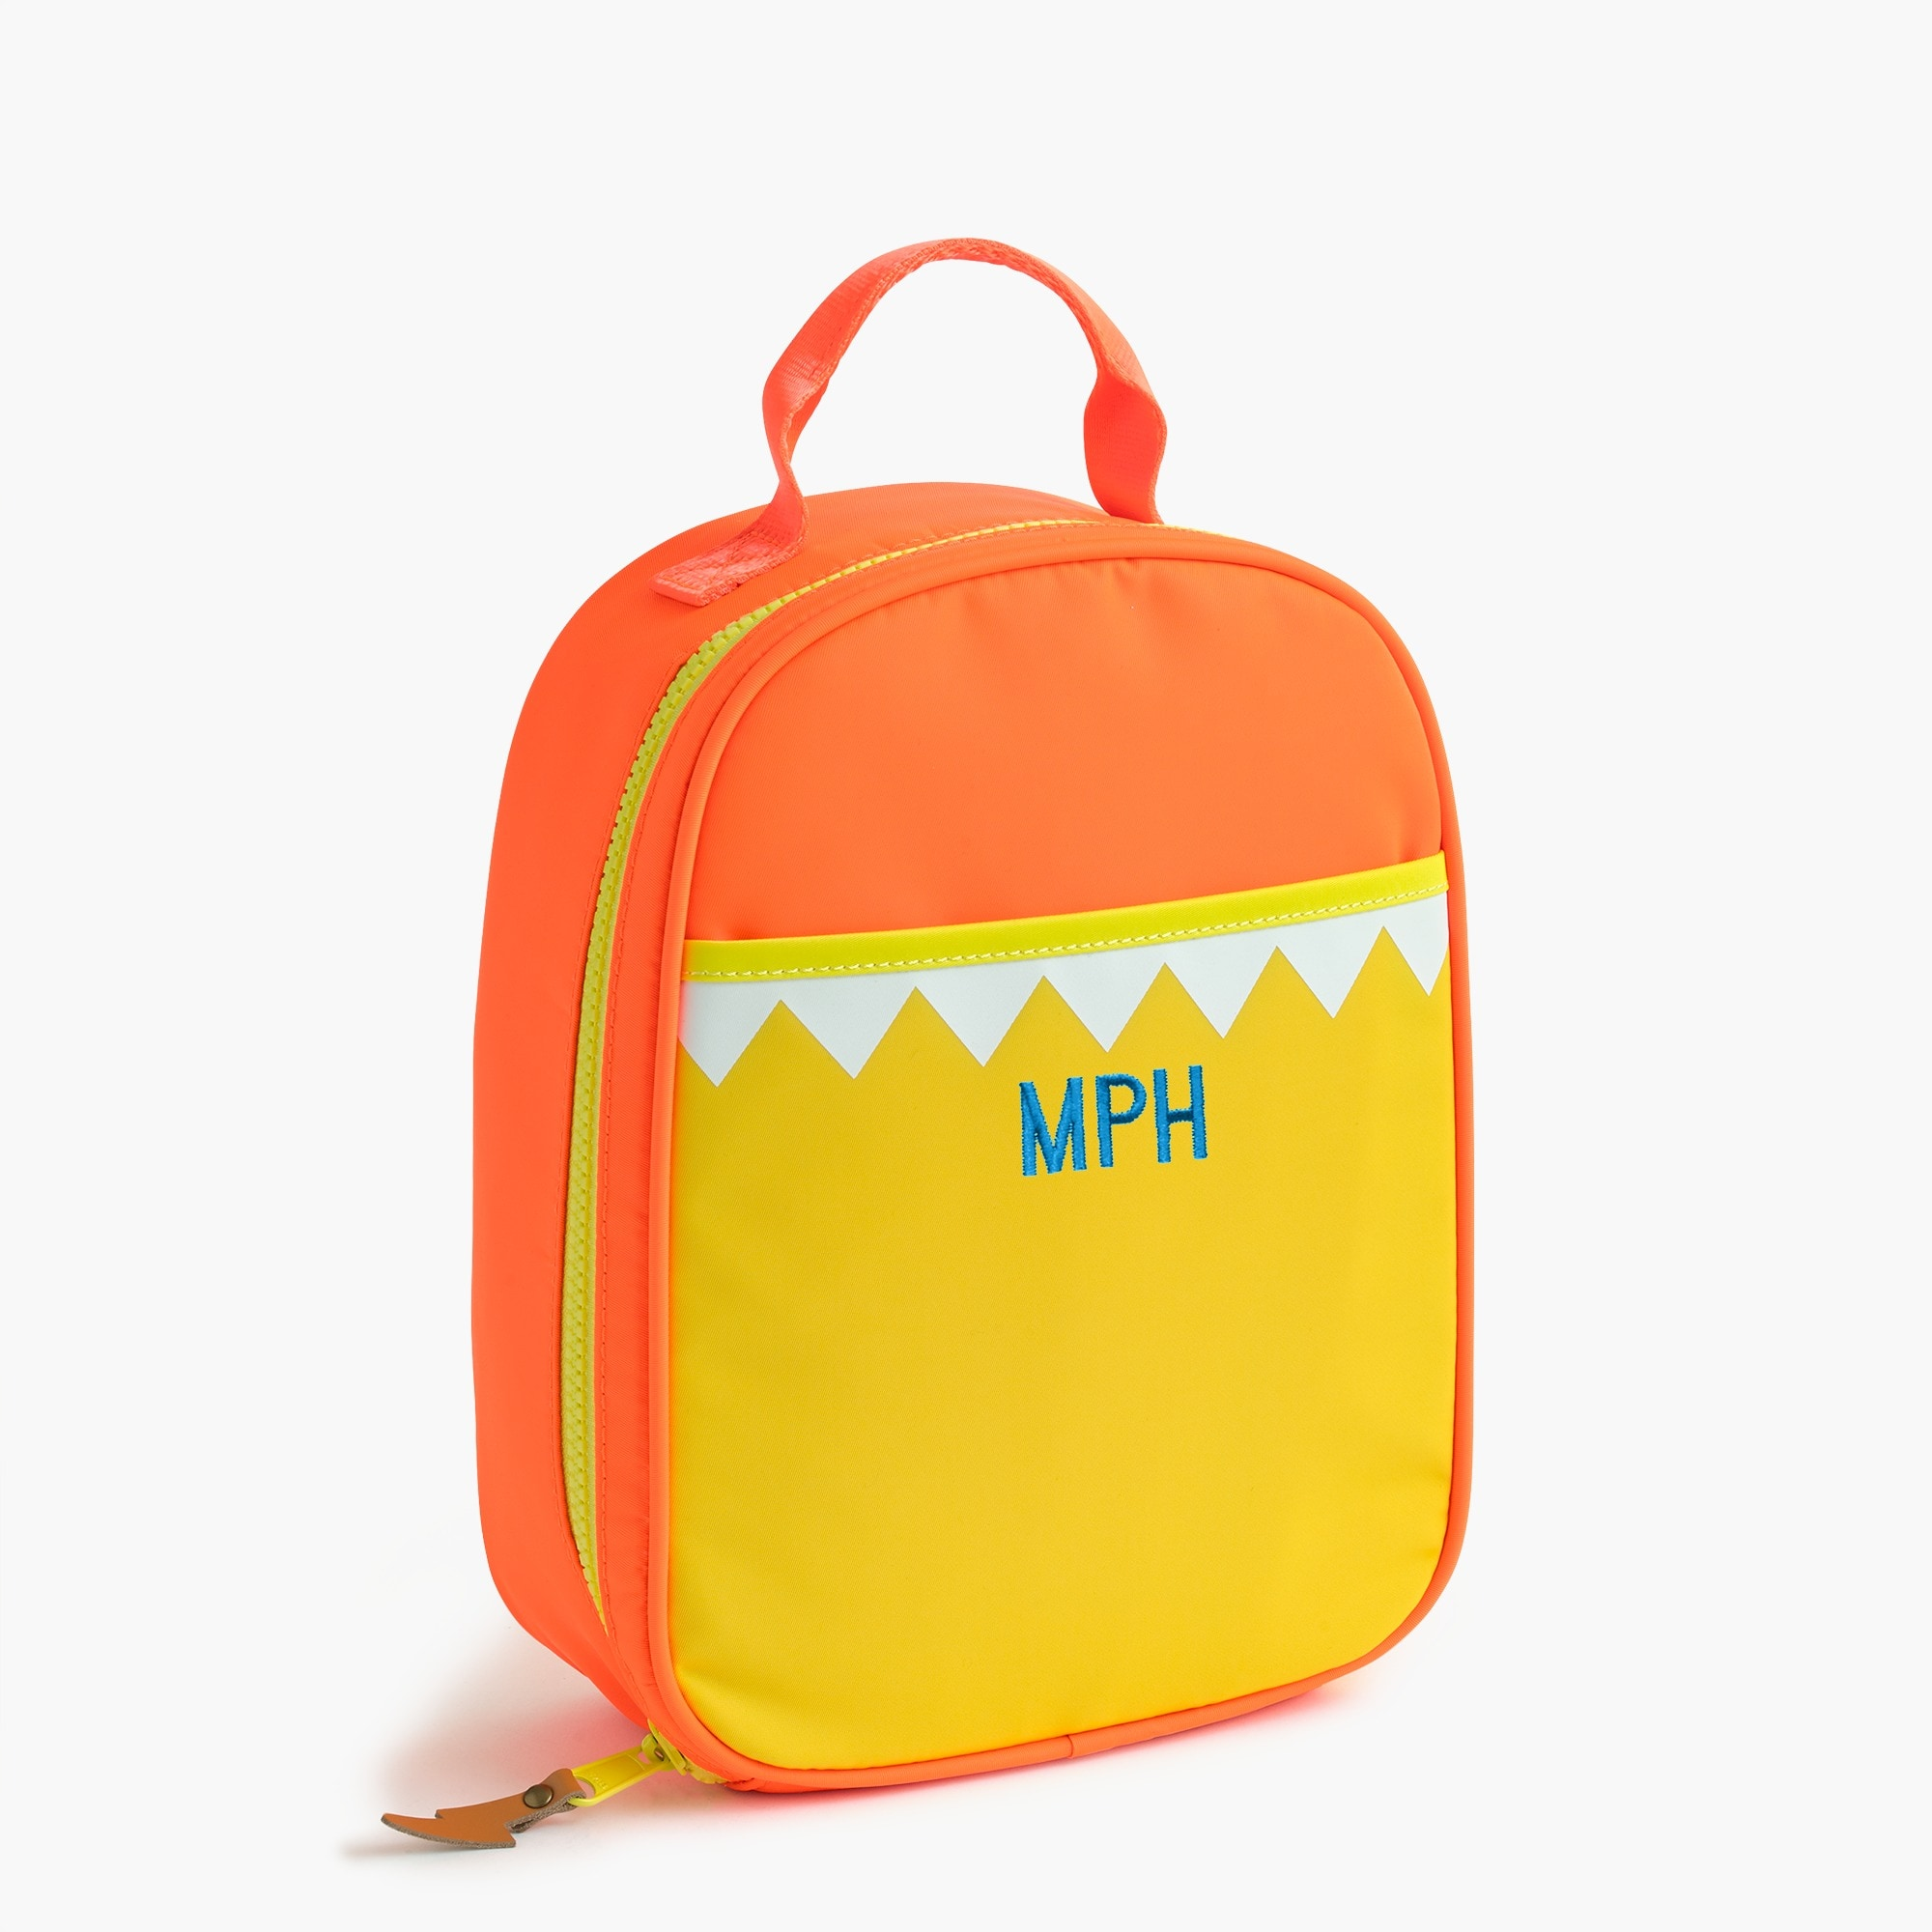 Image 2 for Max the Monster™ boys' lunch box